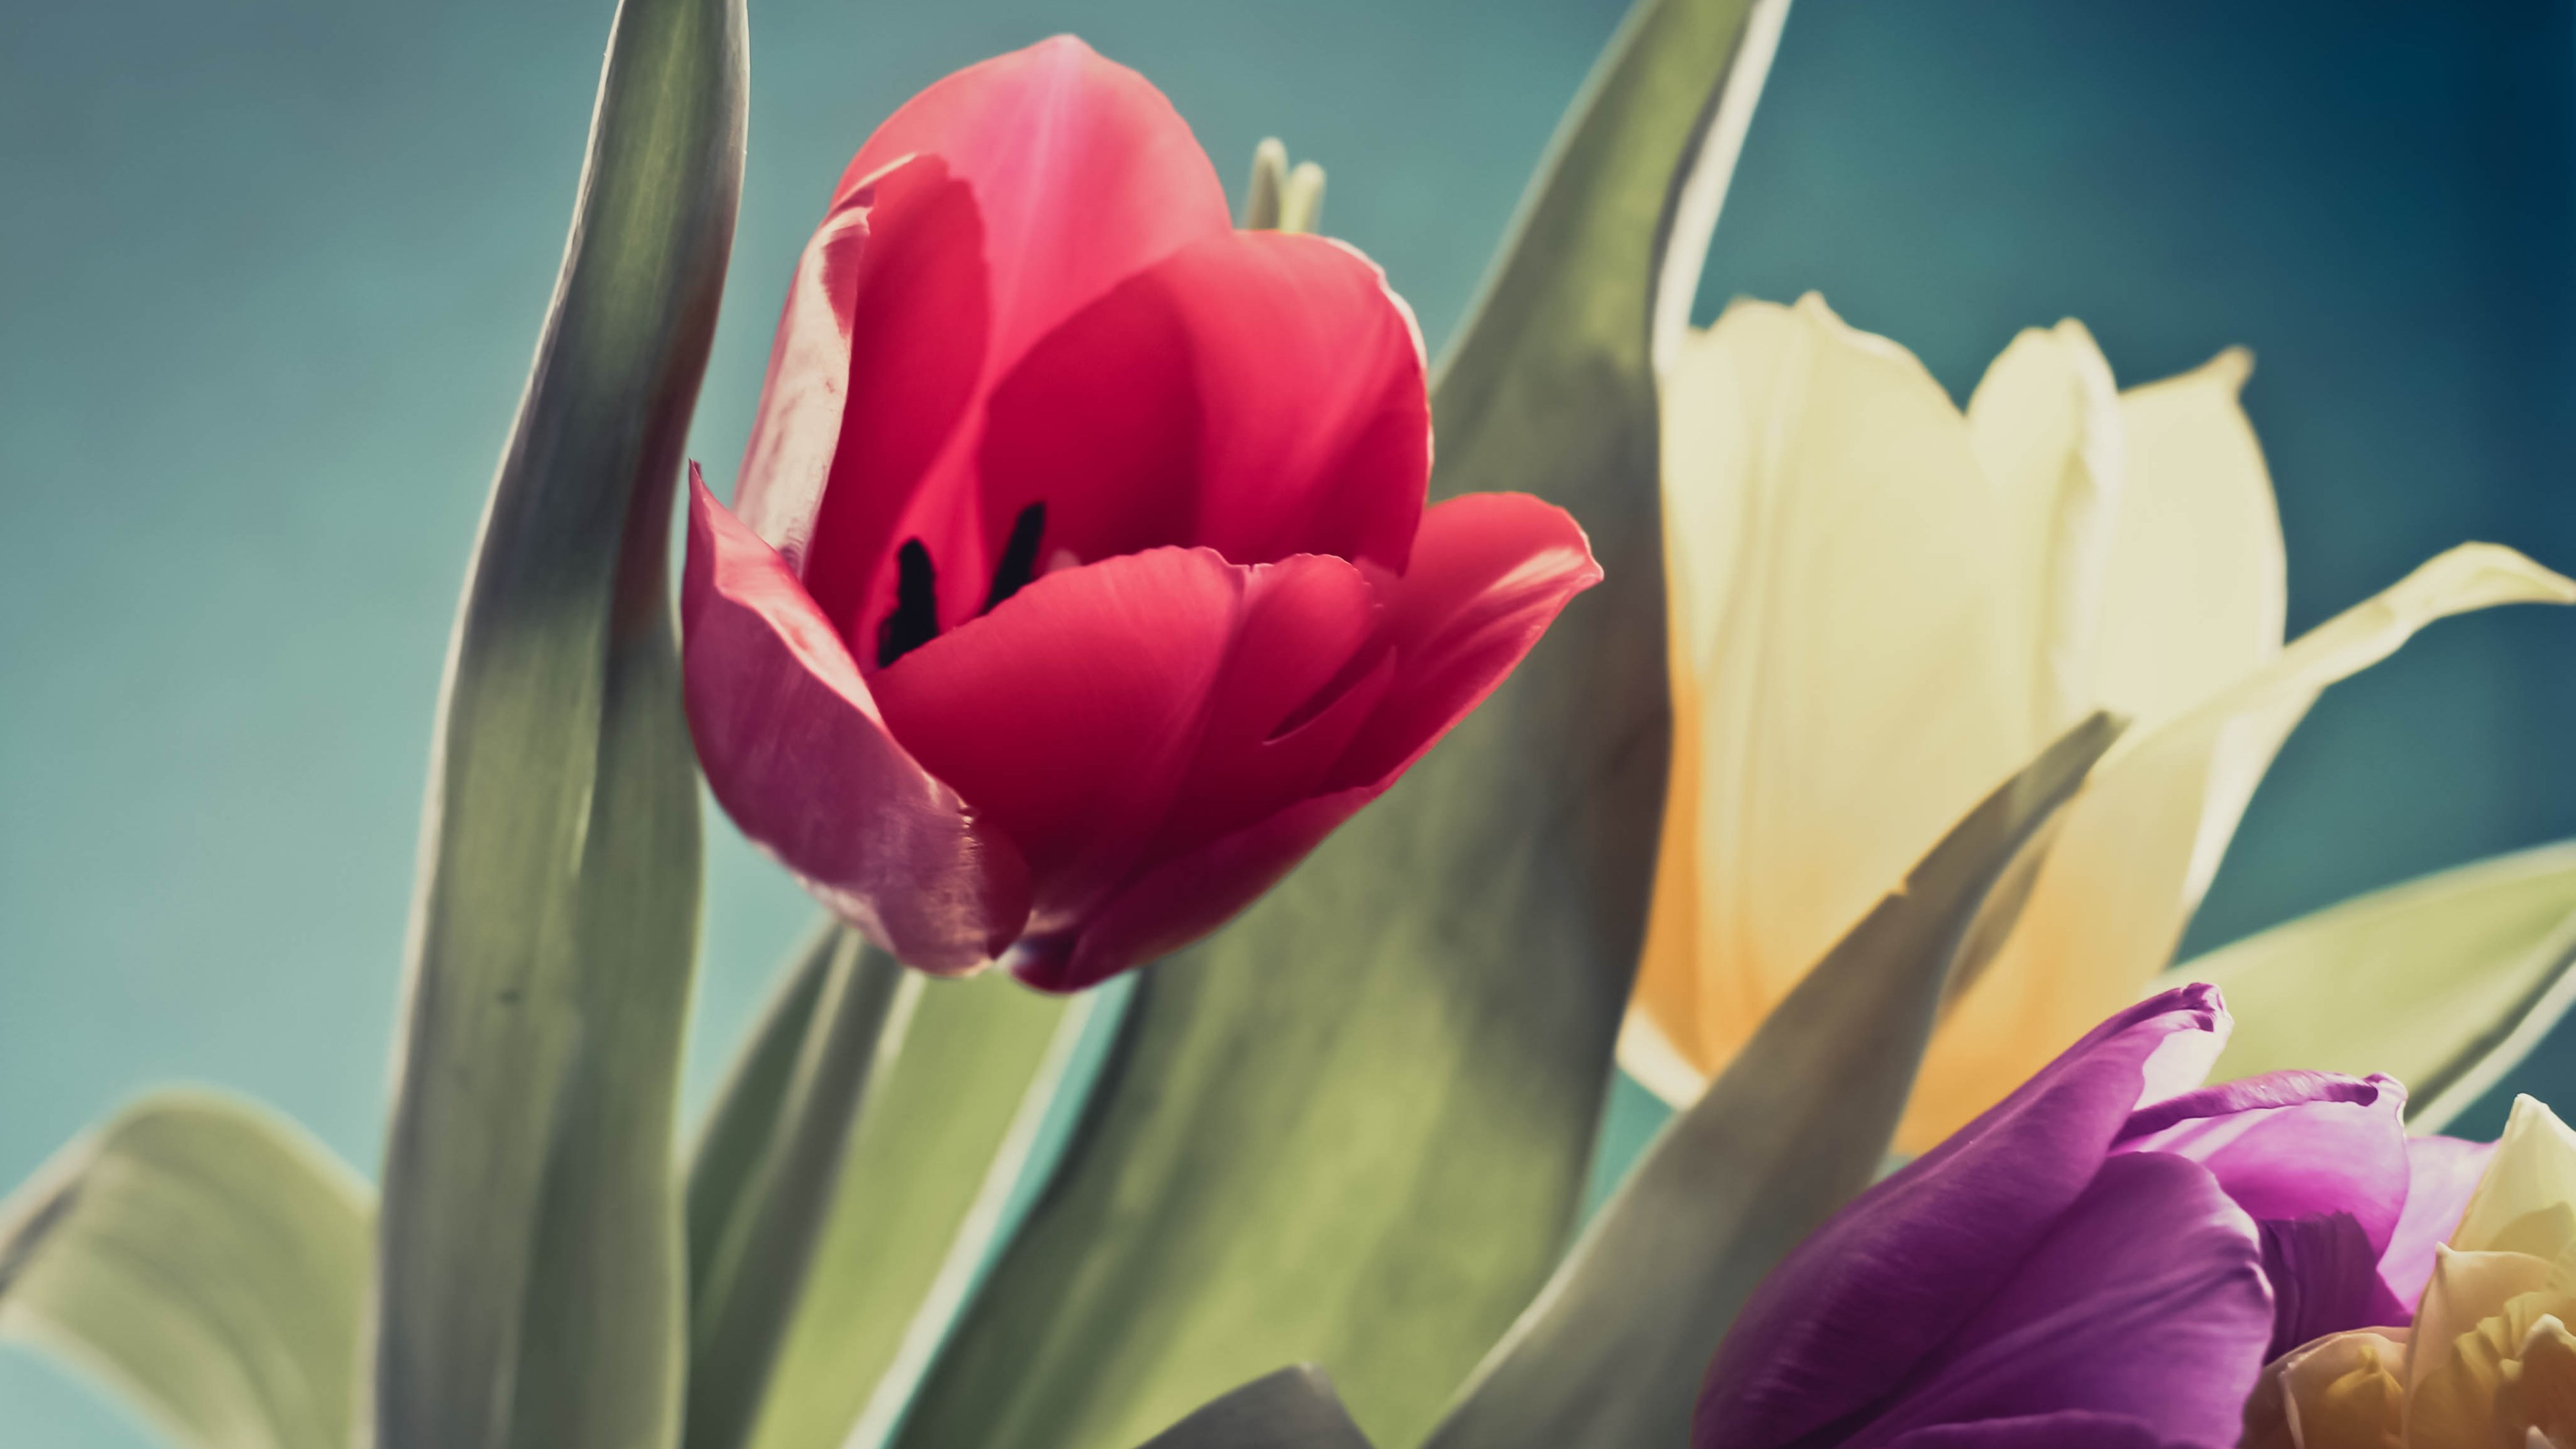 Red, purple and yellow tulips wallpaper 3840x2160